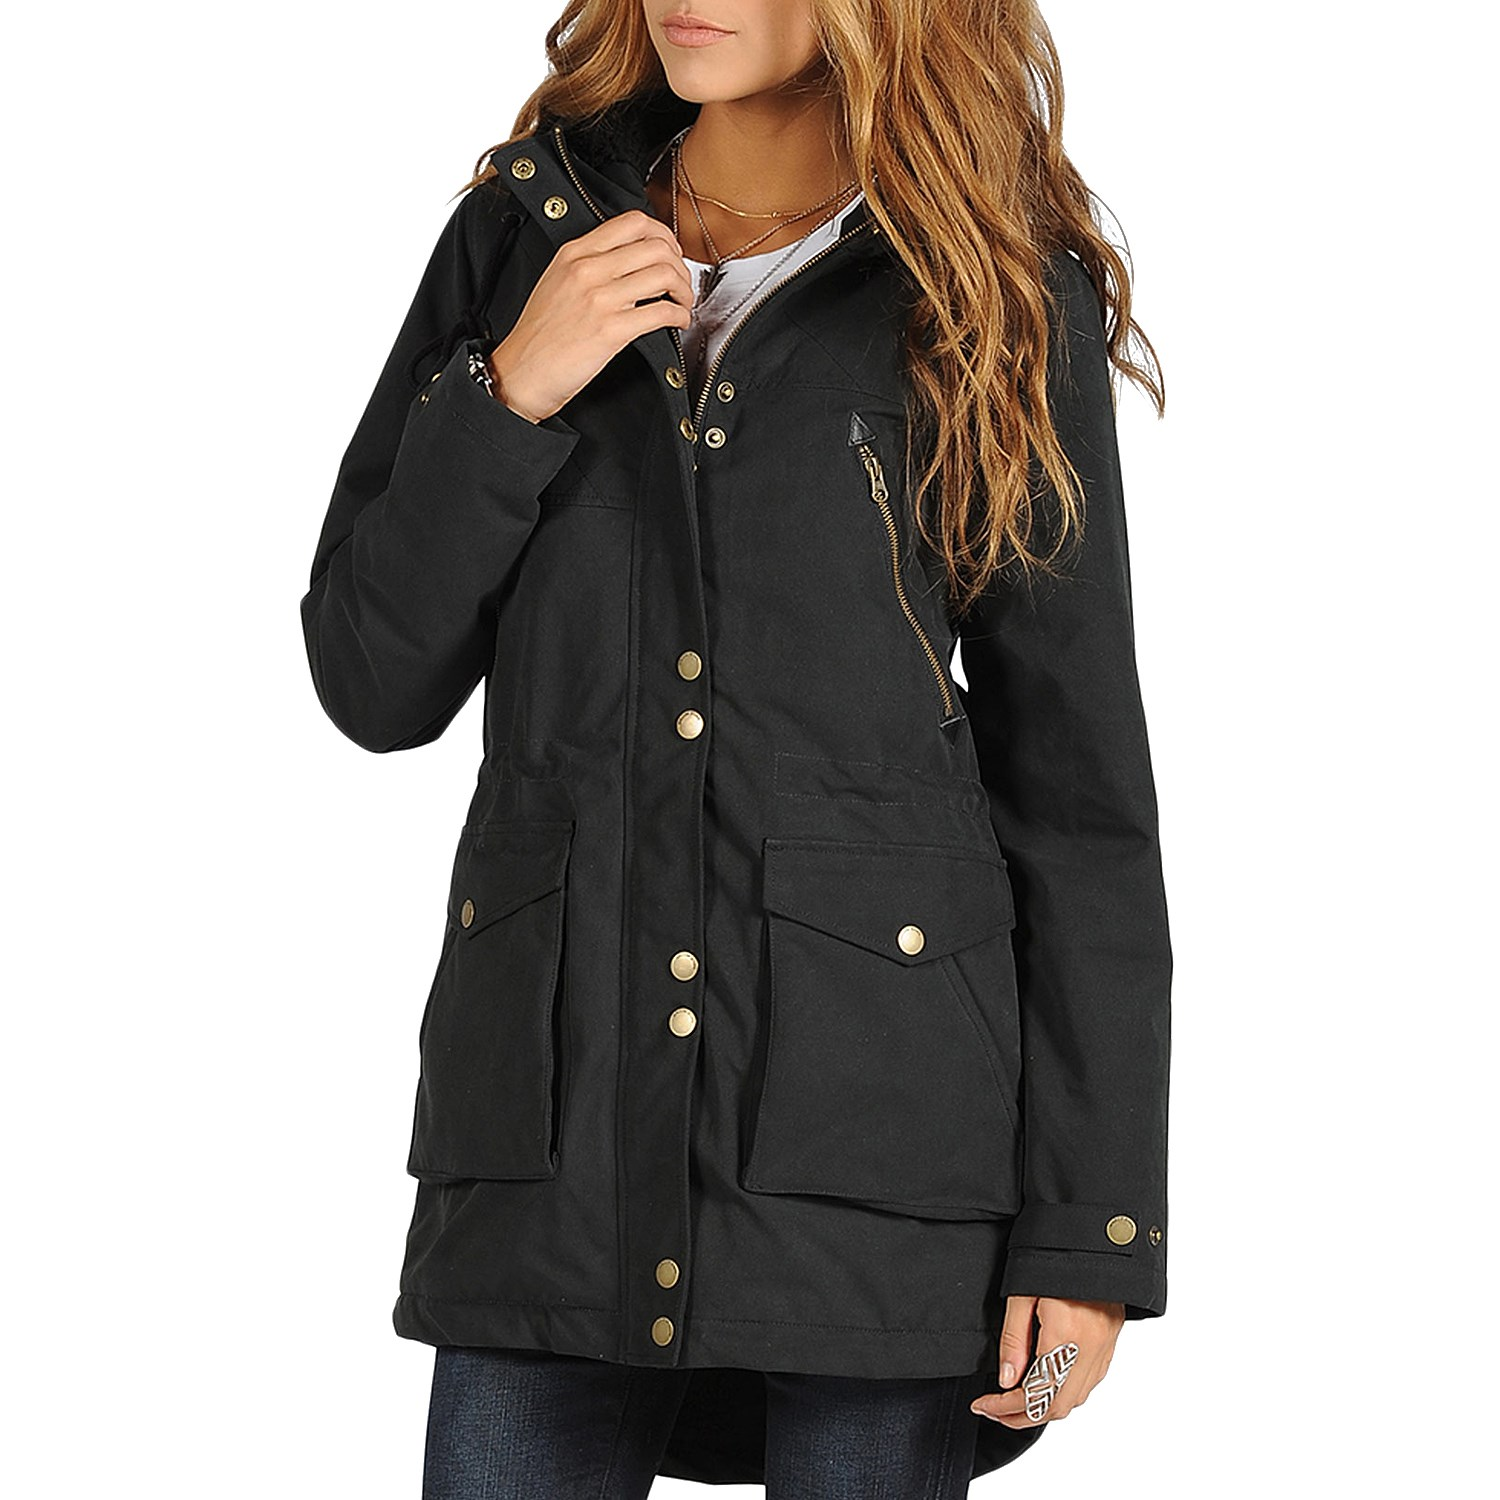 Shop for women's parkas and anoraks at Burlington. Save up to 65% off other retailers' prices. Free Shipping available.